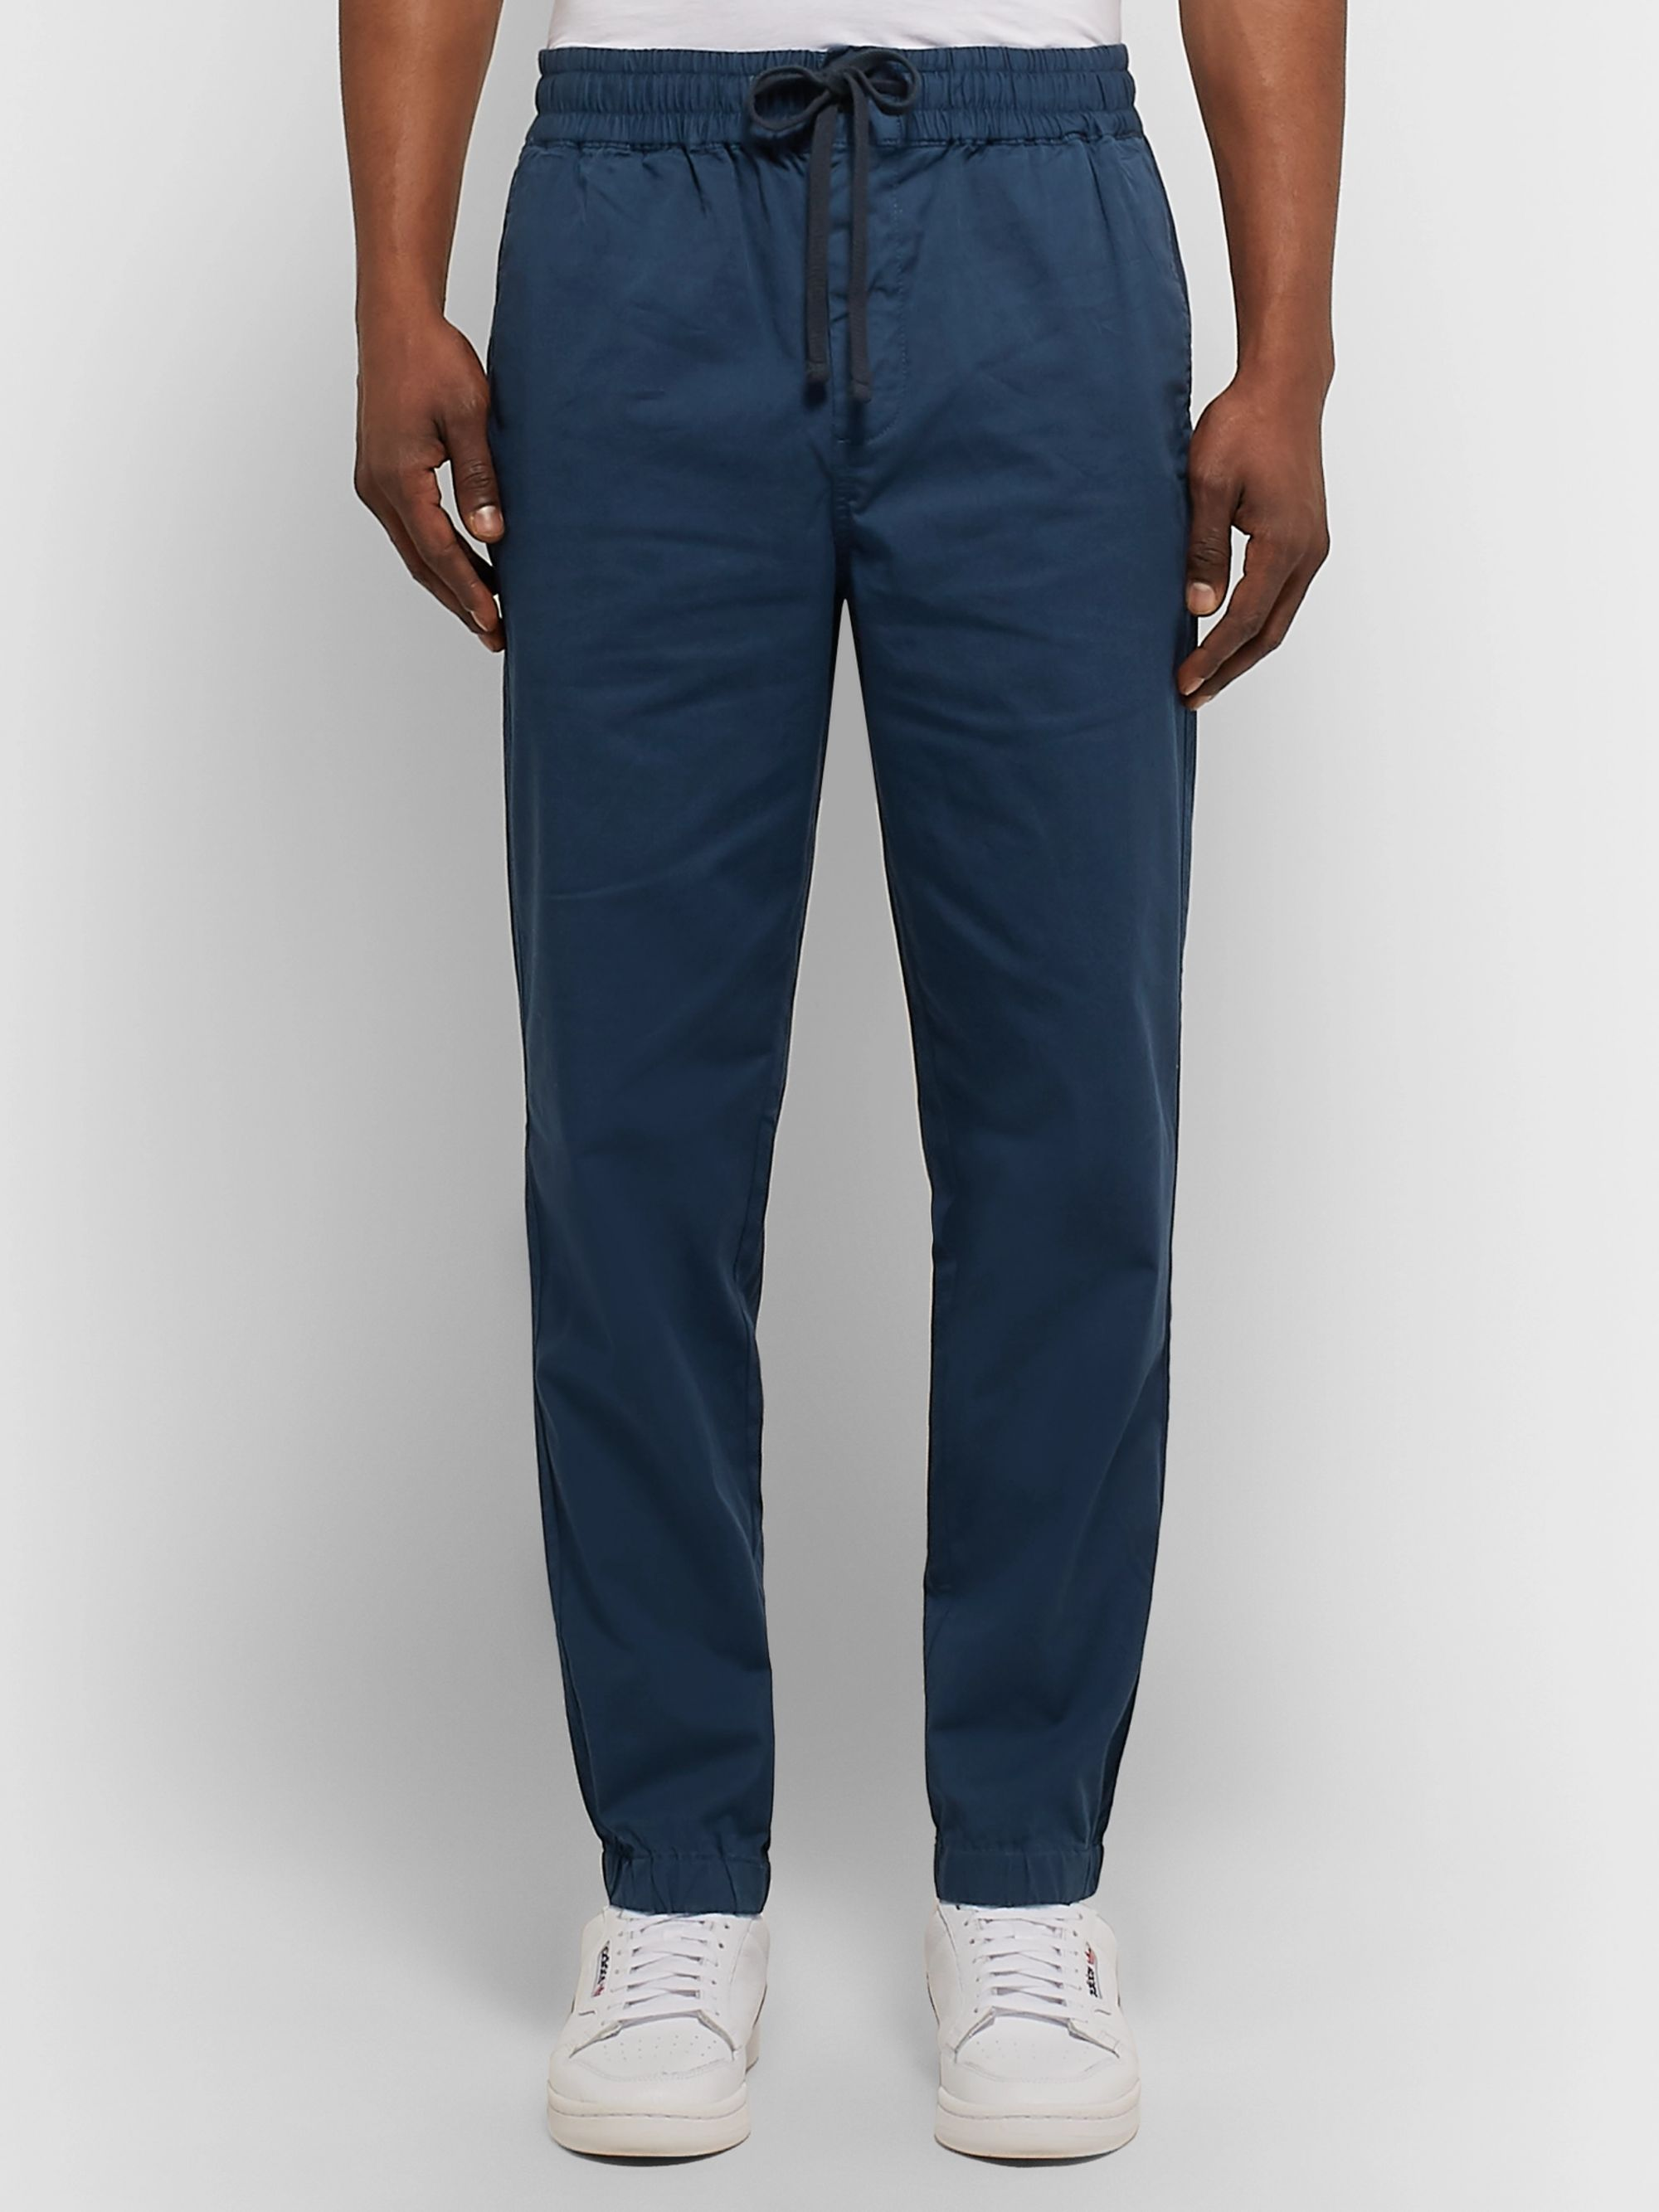 J.Crew Storm-Blue Garment-Dyed Cotton-Blend Twill Drawstring Trousers